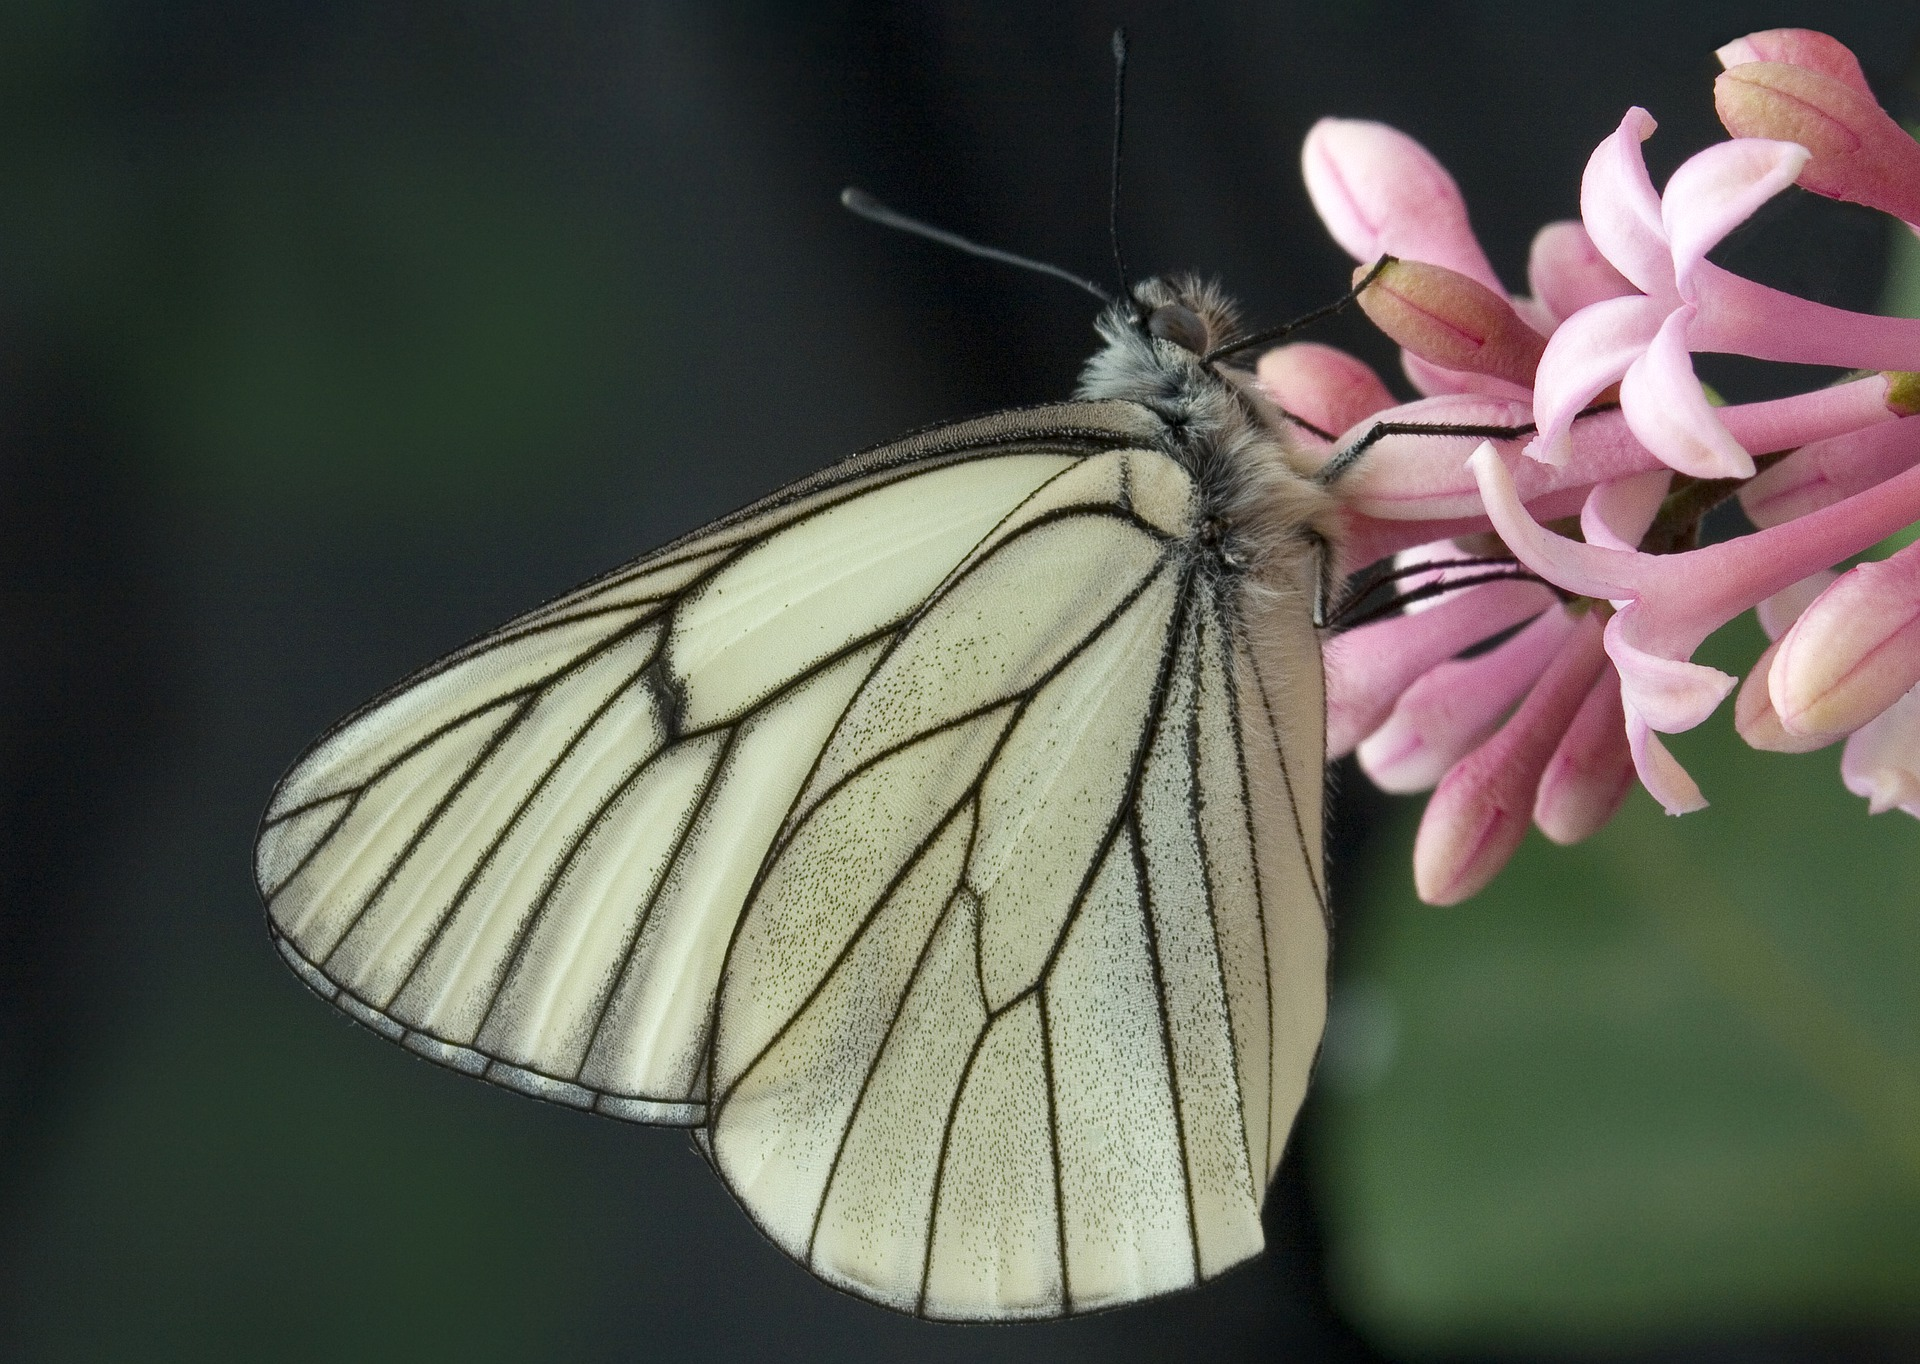 black-veined-white-4336159_1920